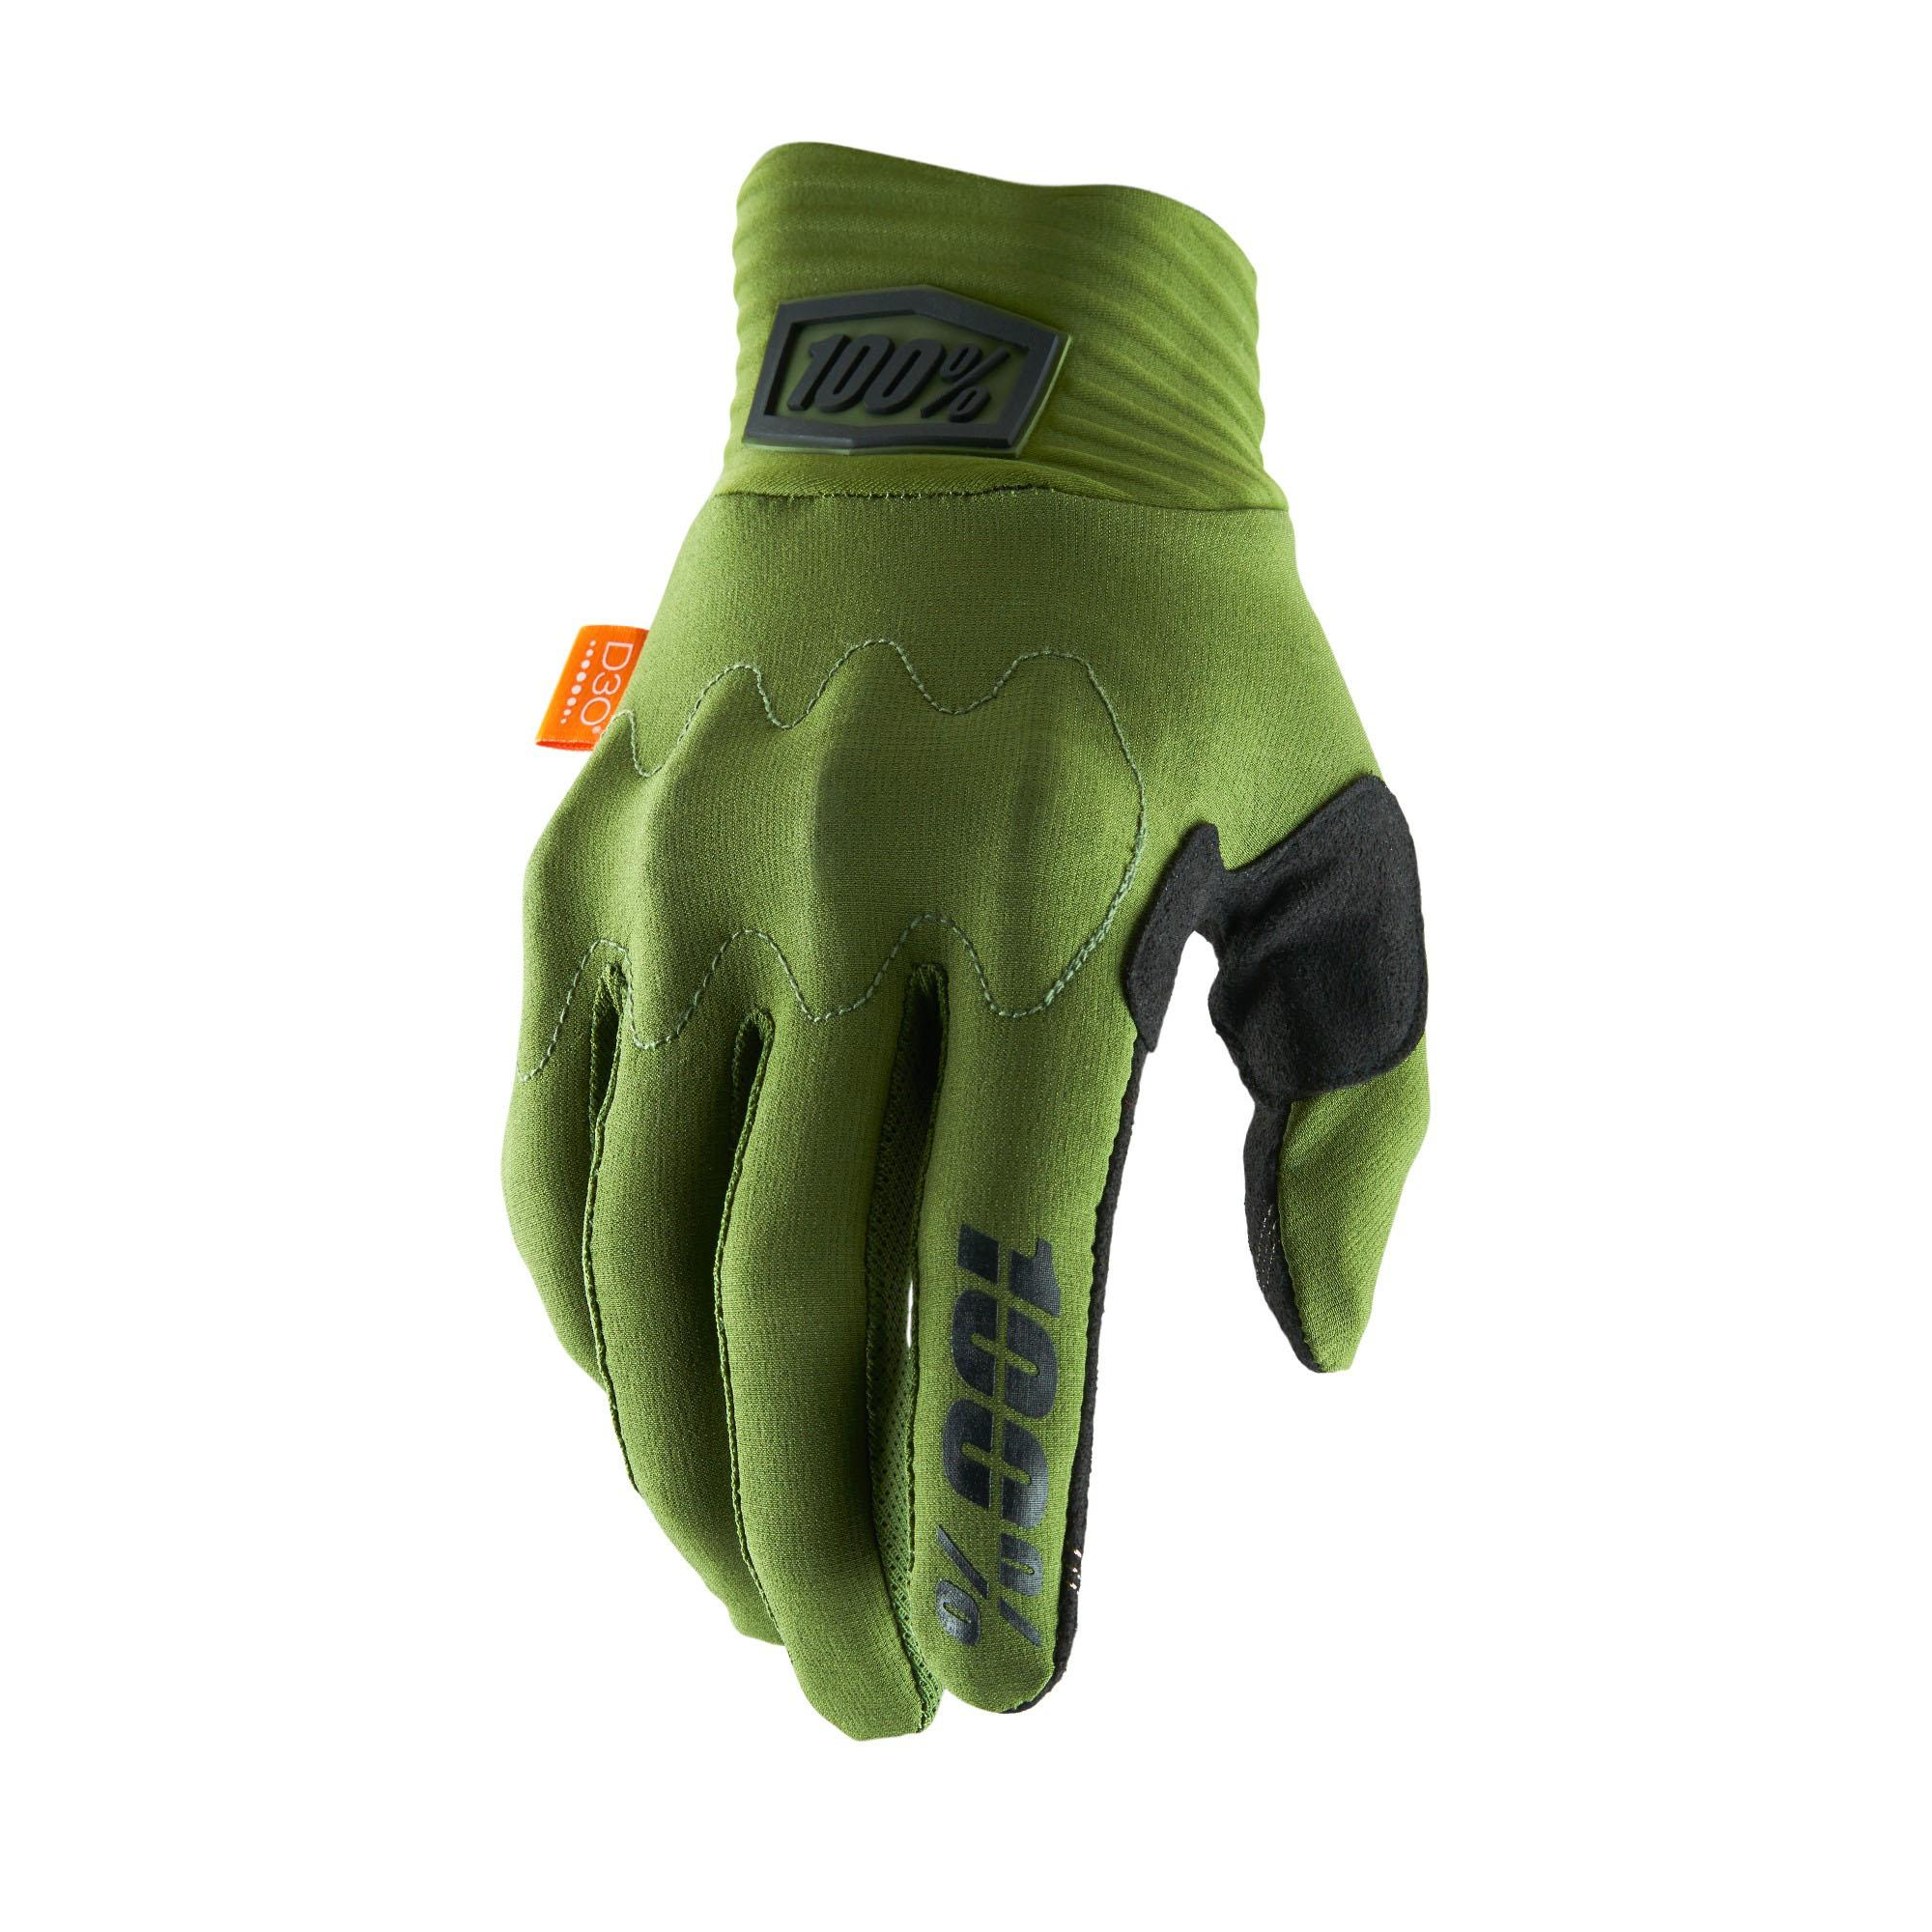 COGNITO 100% Glove Army Green/Black